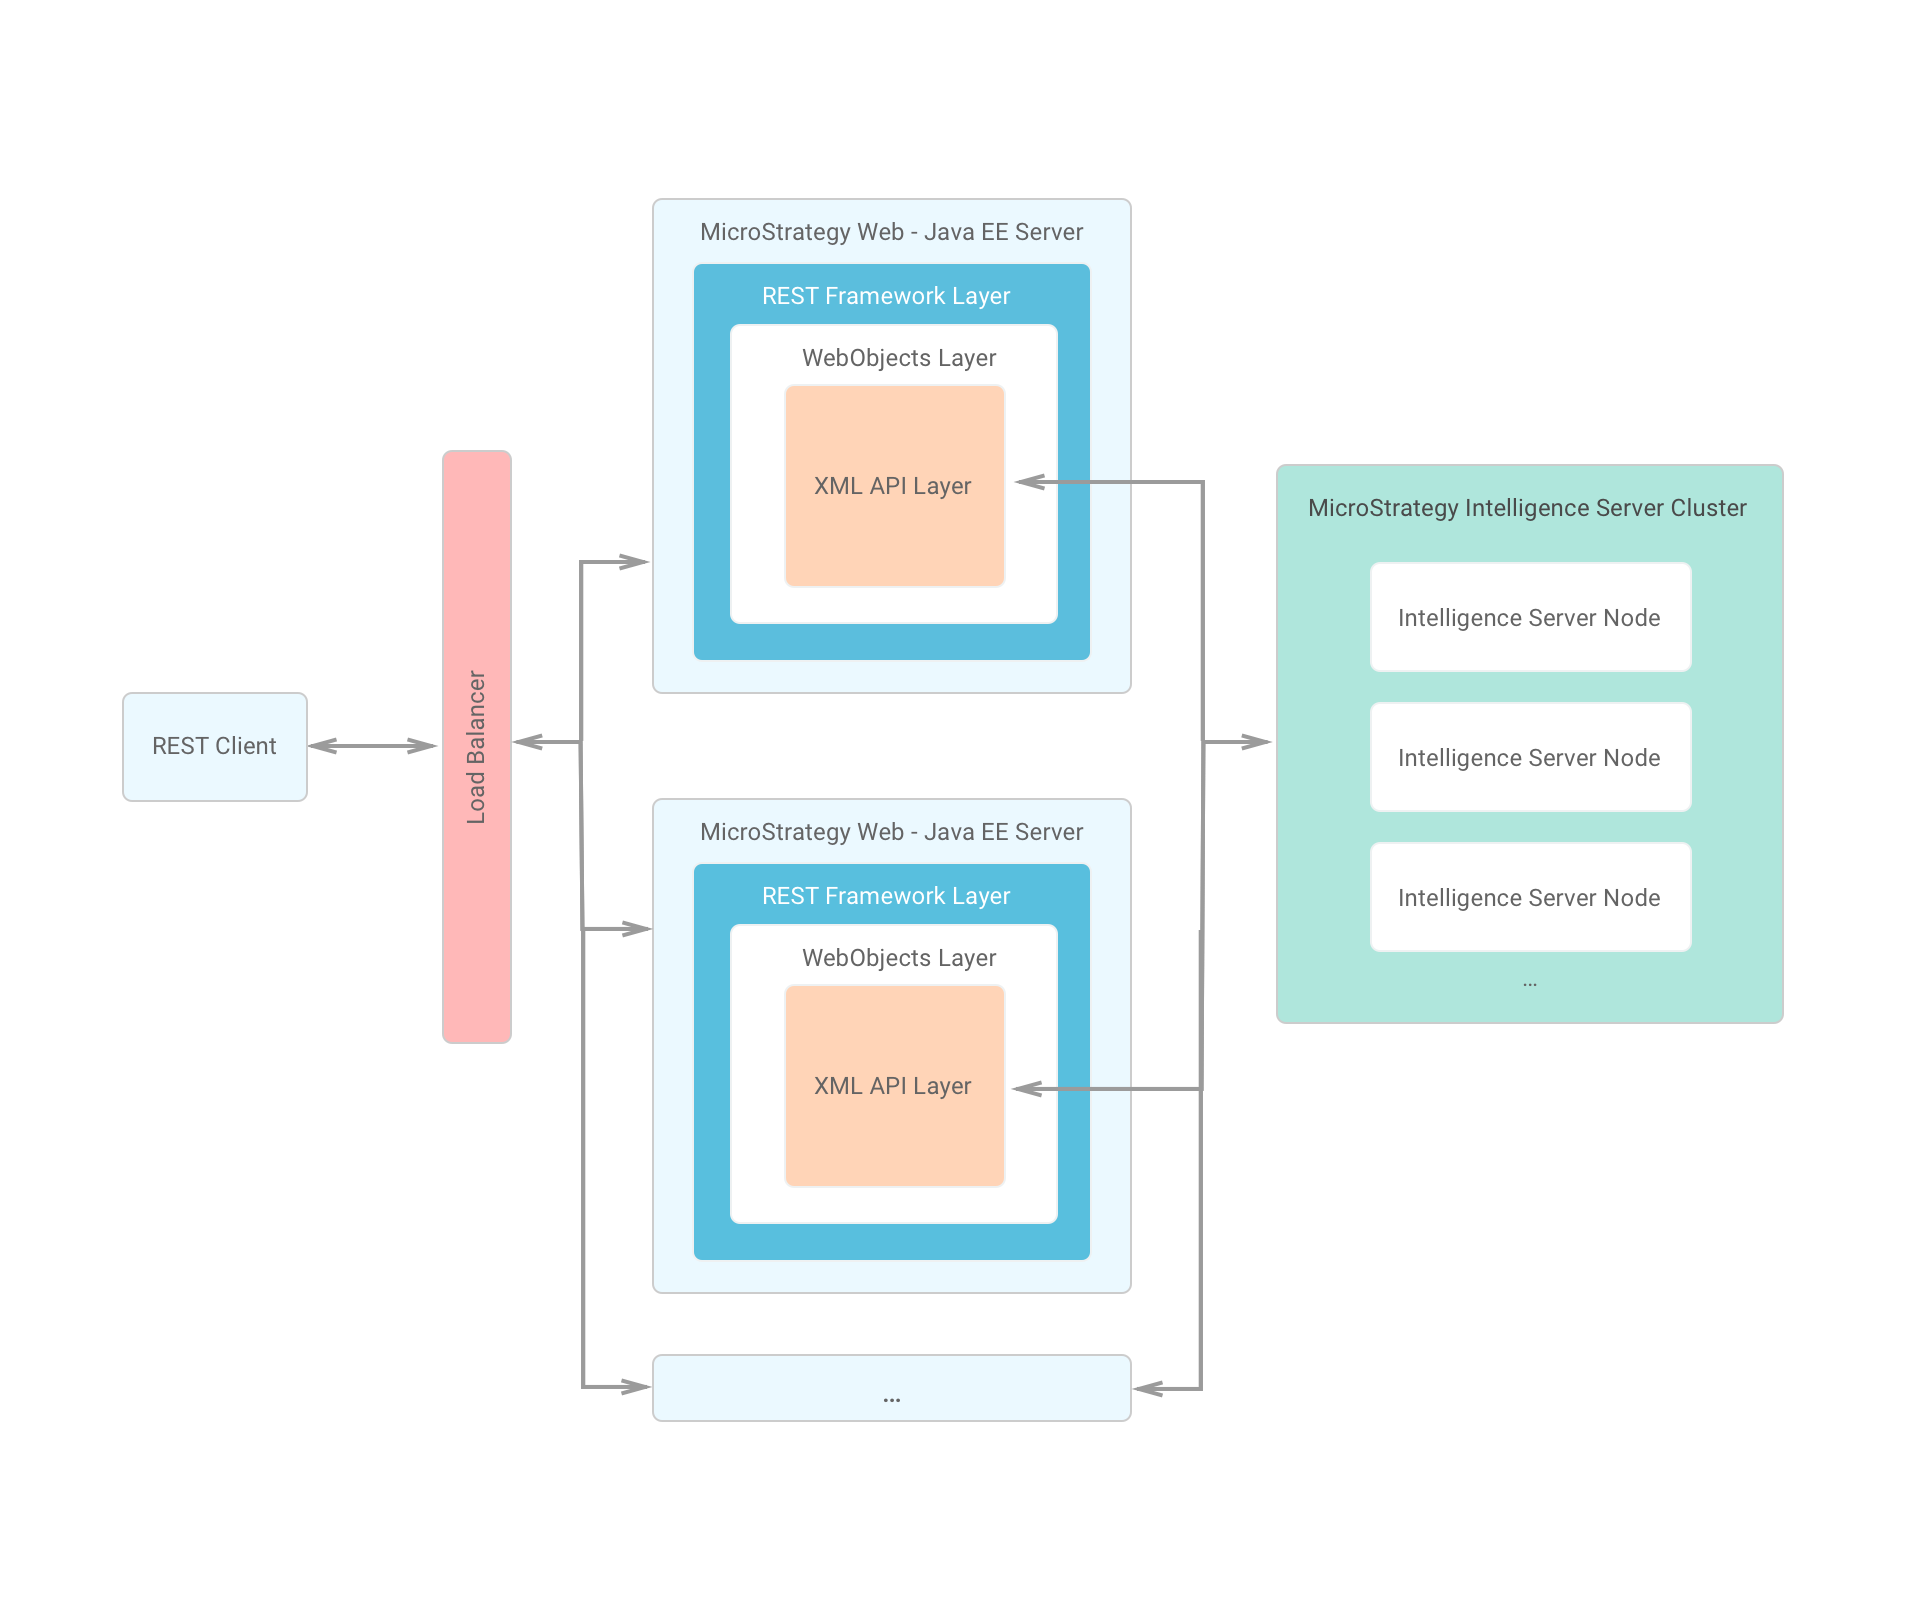 Configuring clustered environments